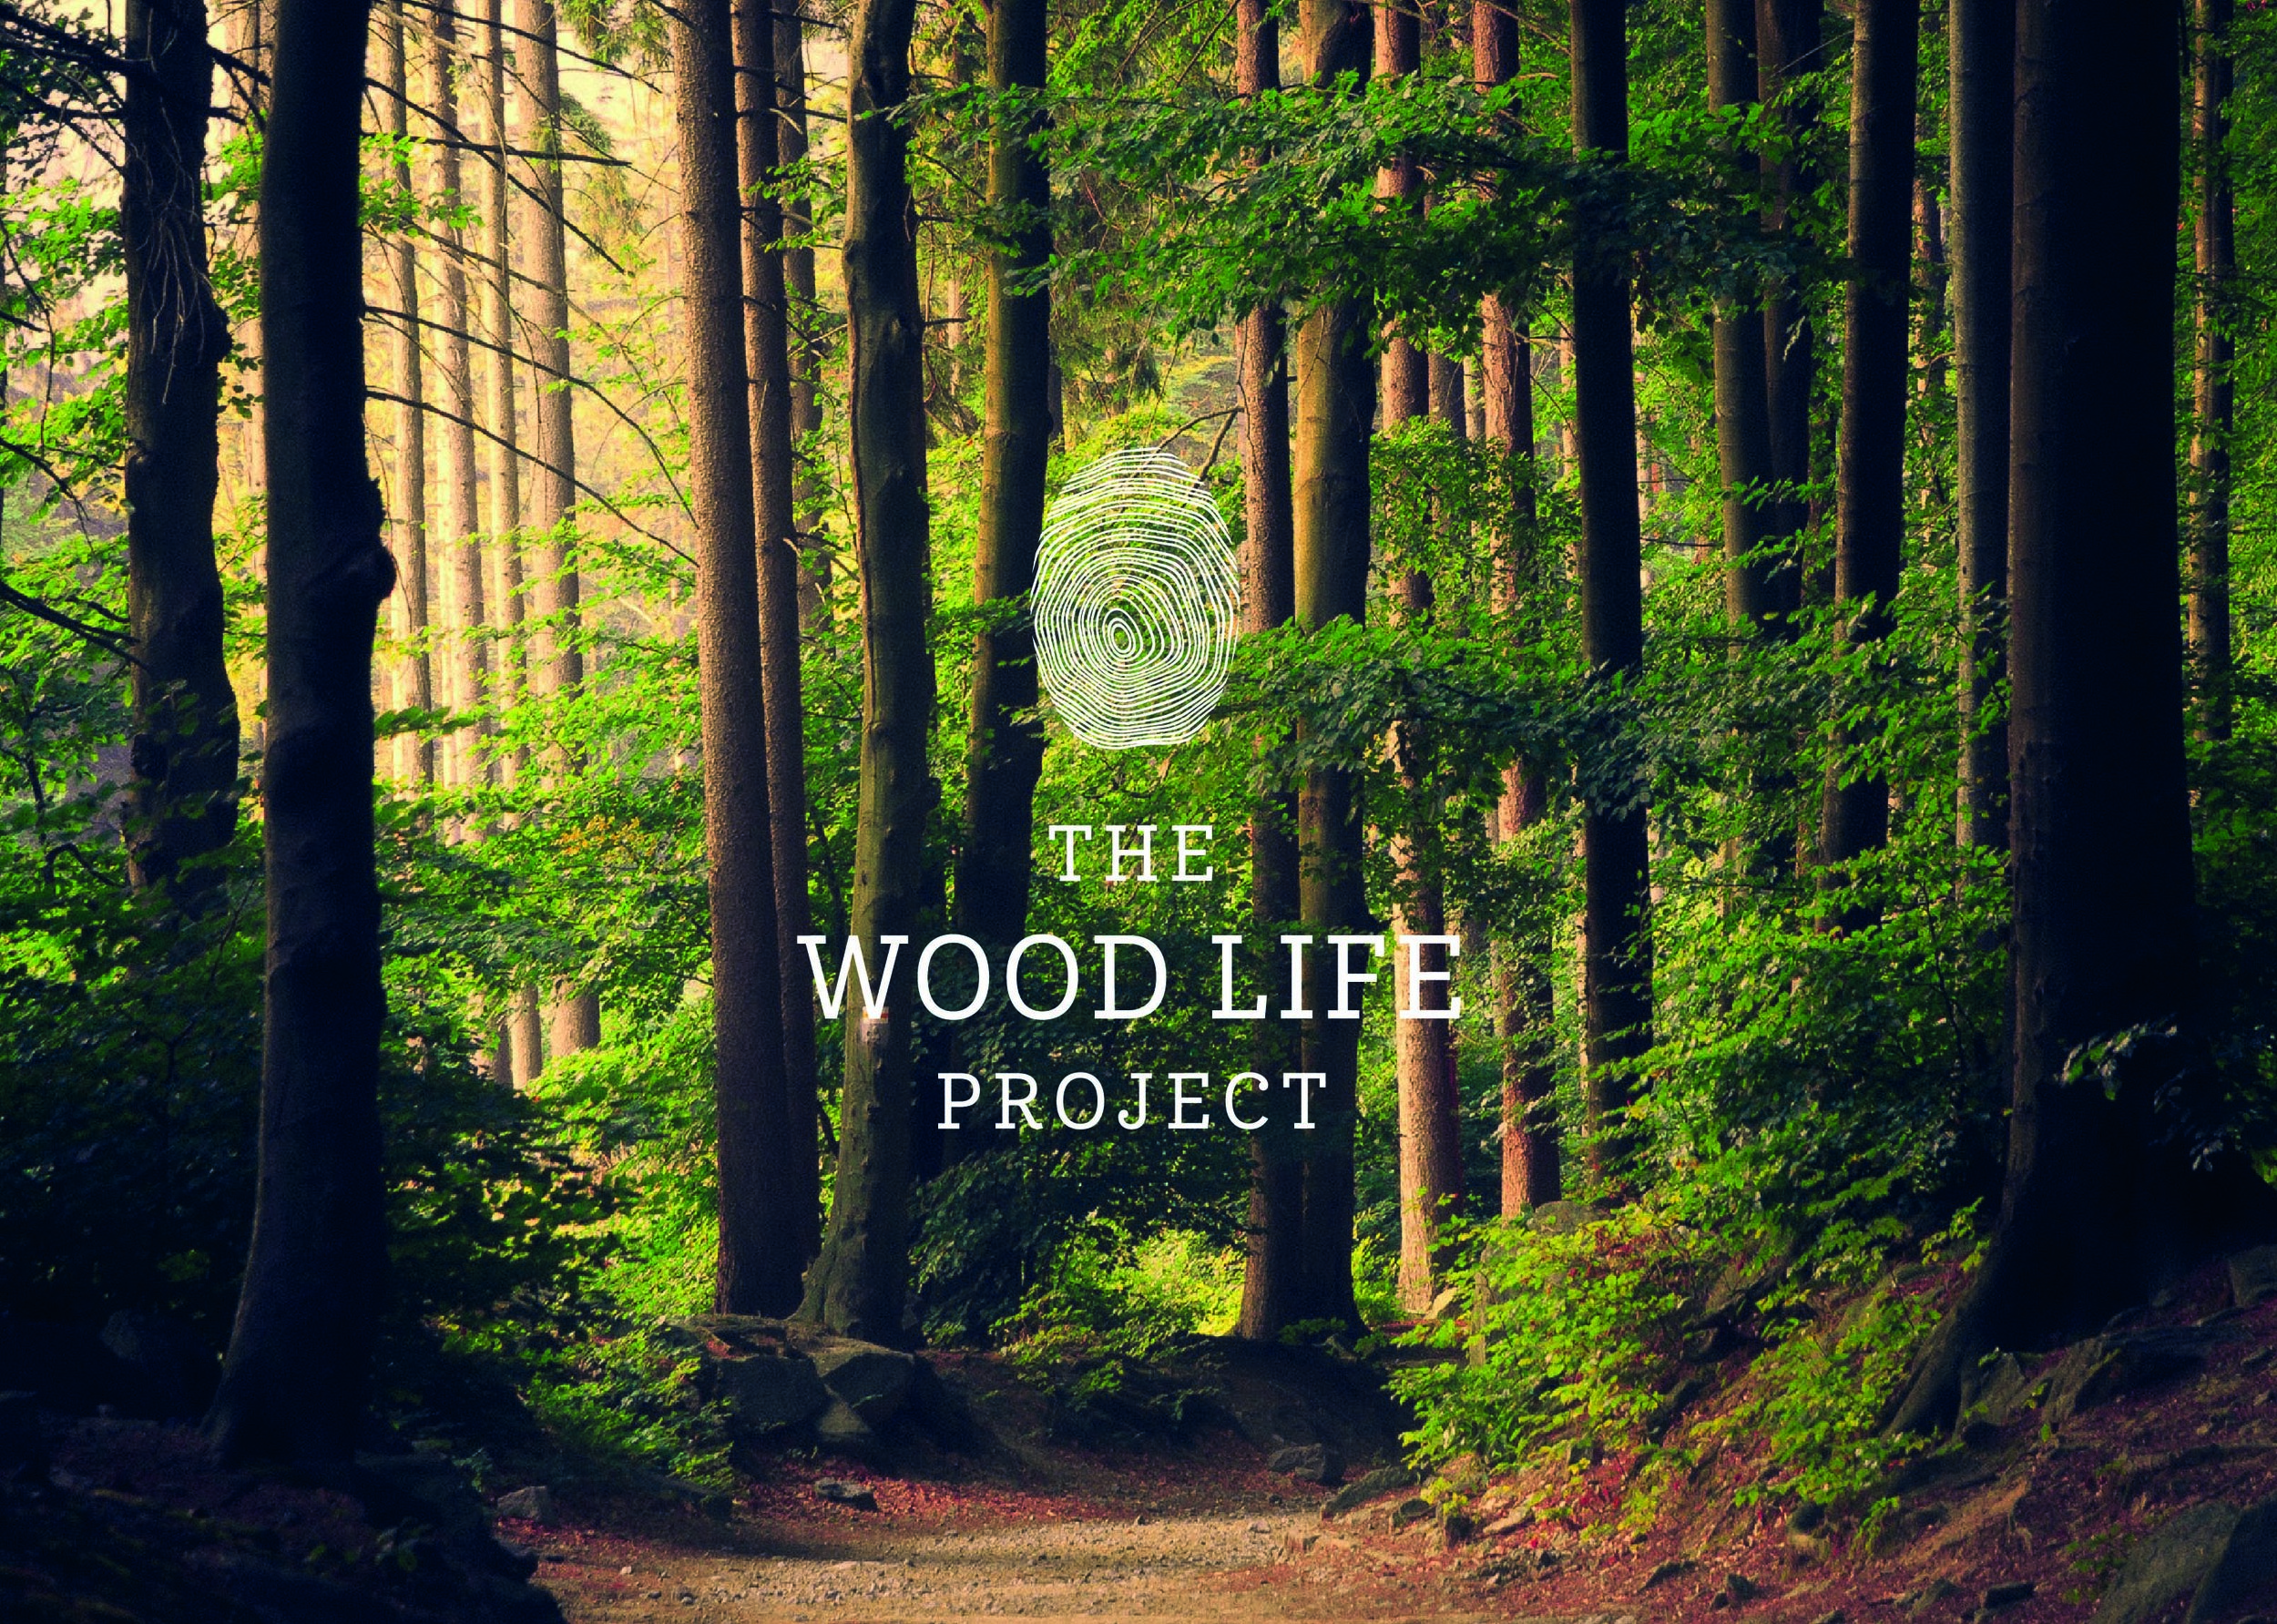 The wood life project instagram-12.jpg